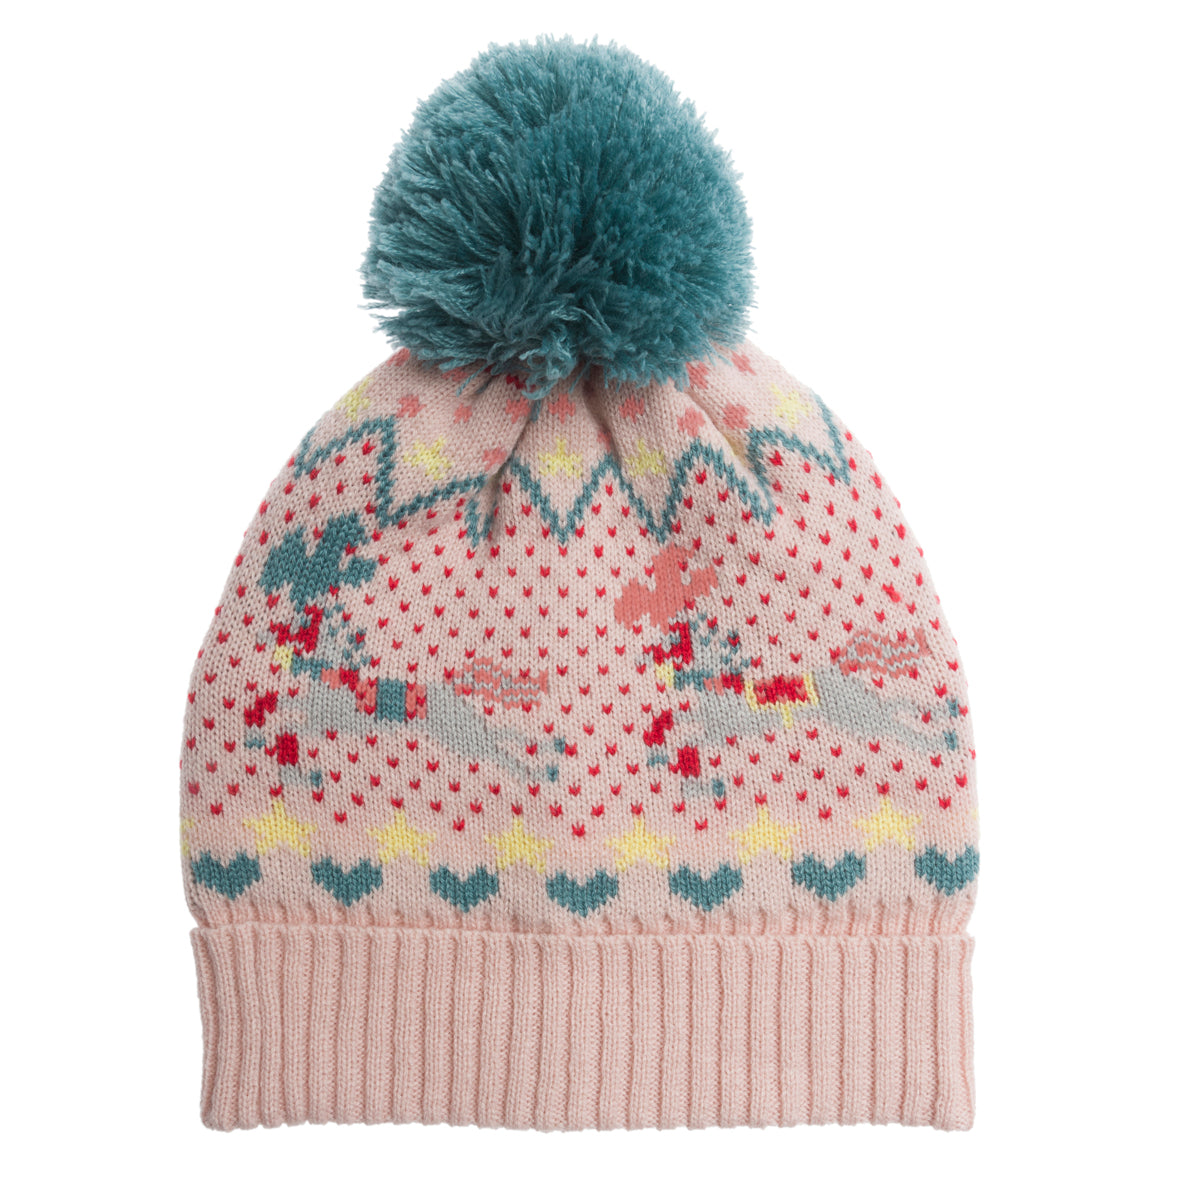 Fairground Ponies Knitted Kids Hat by Sophie Allport